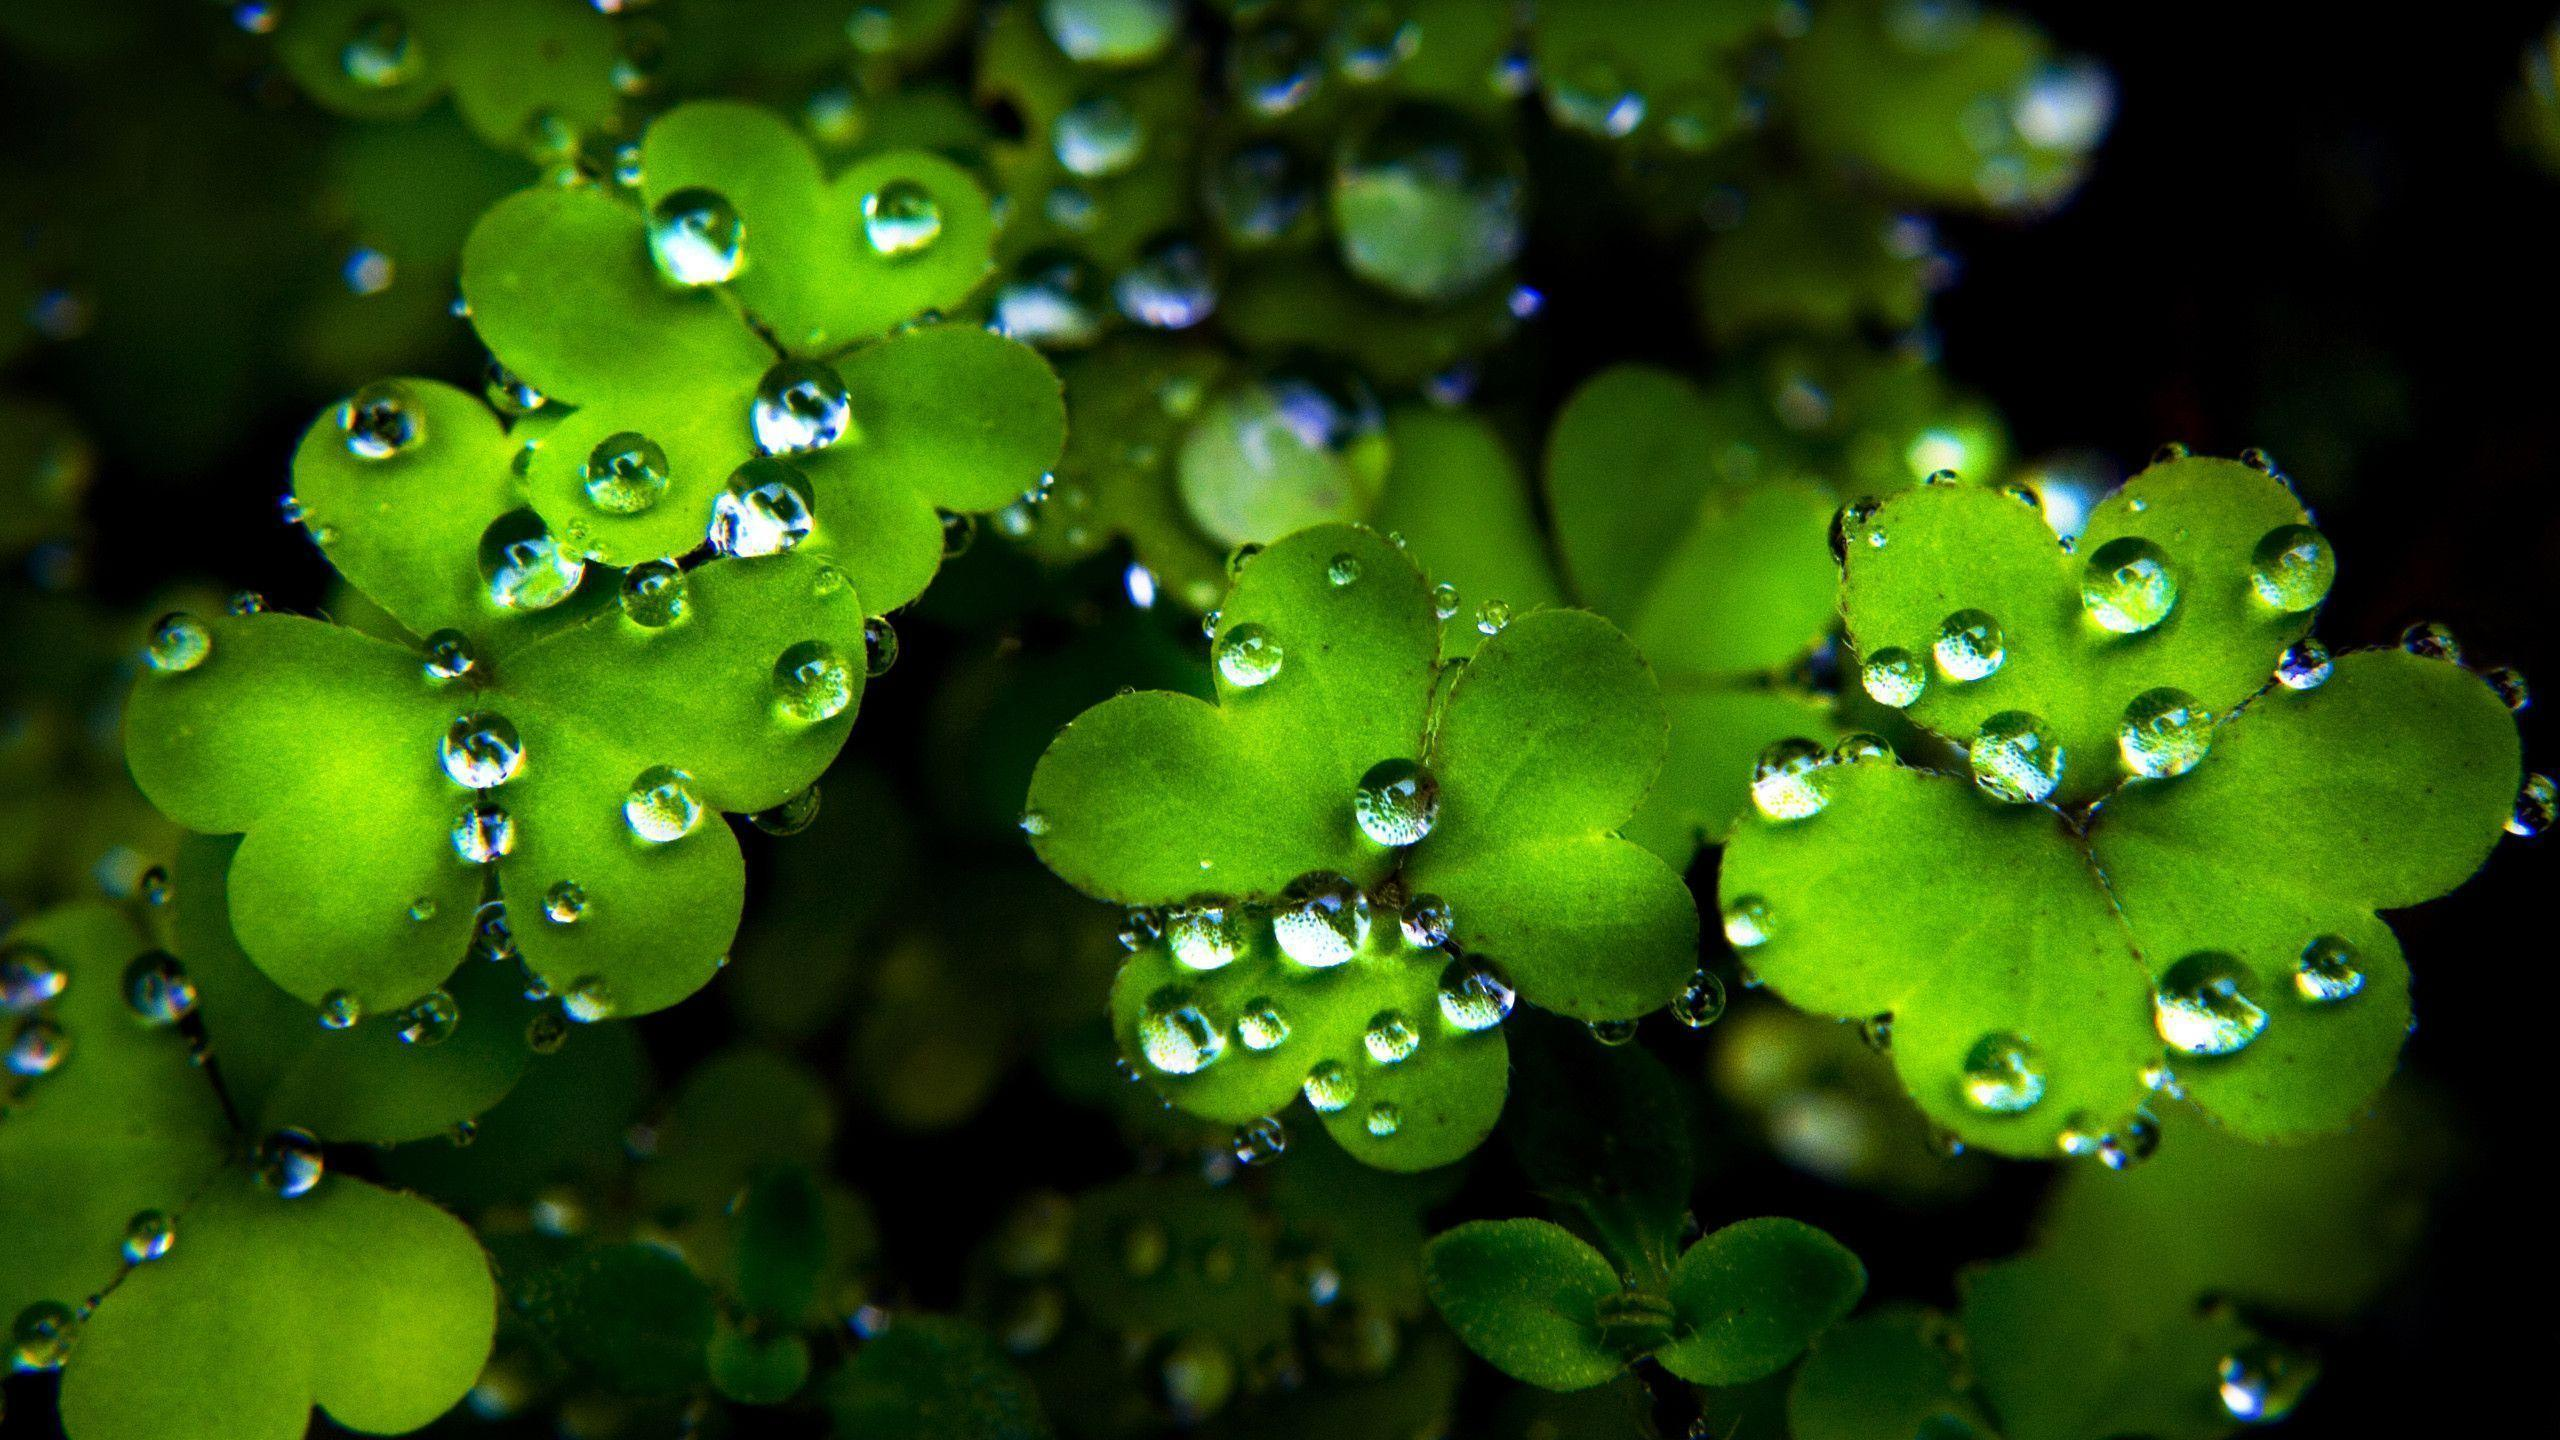 patricks day shamrock background - photo #18